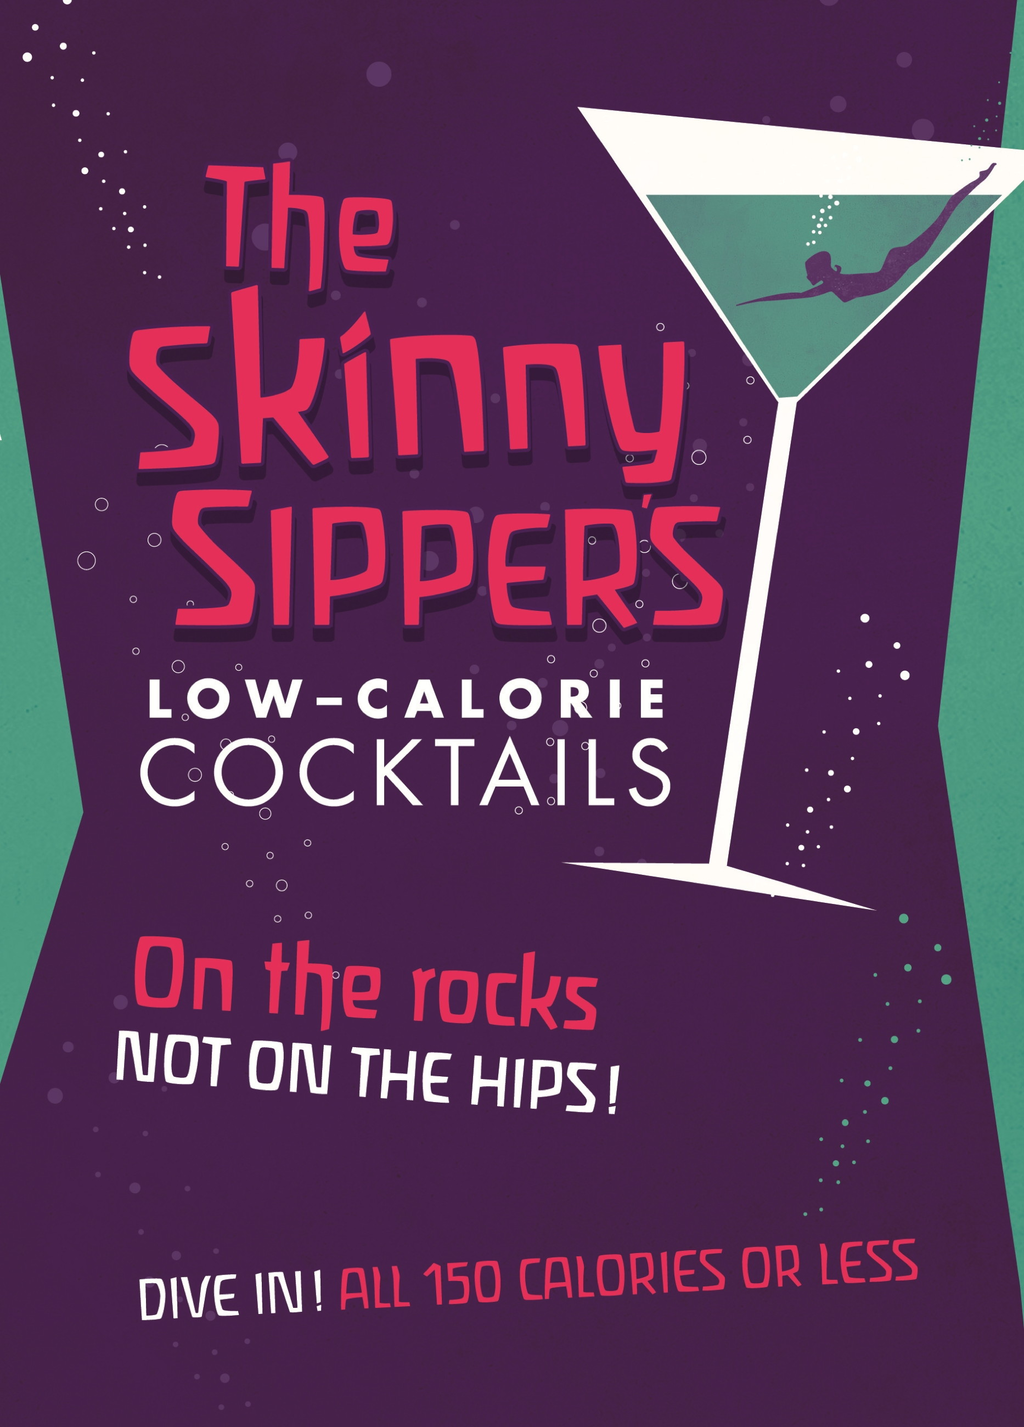 Skinny Sipper's Low-calorie Cocktails